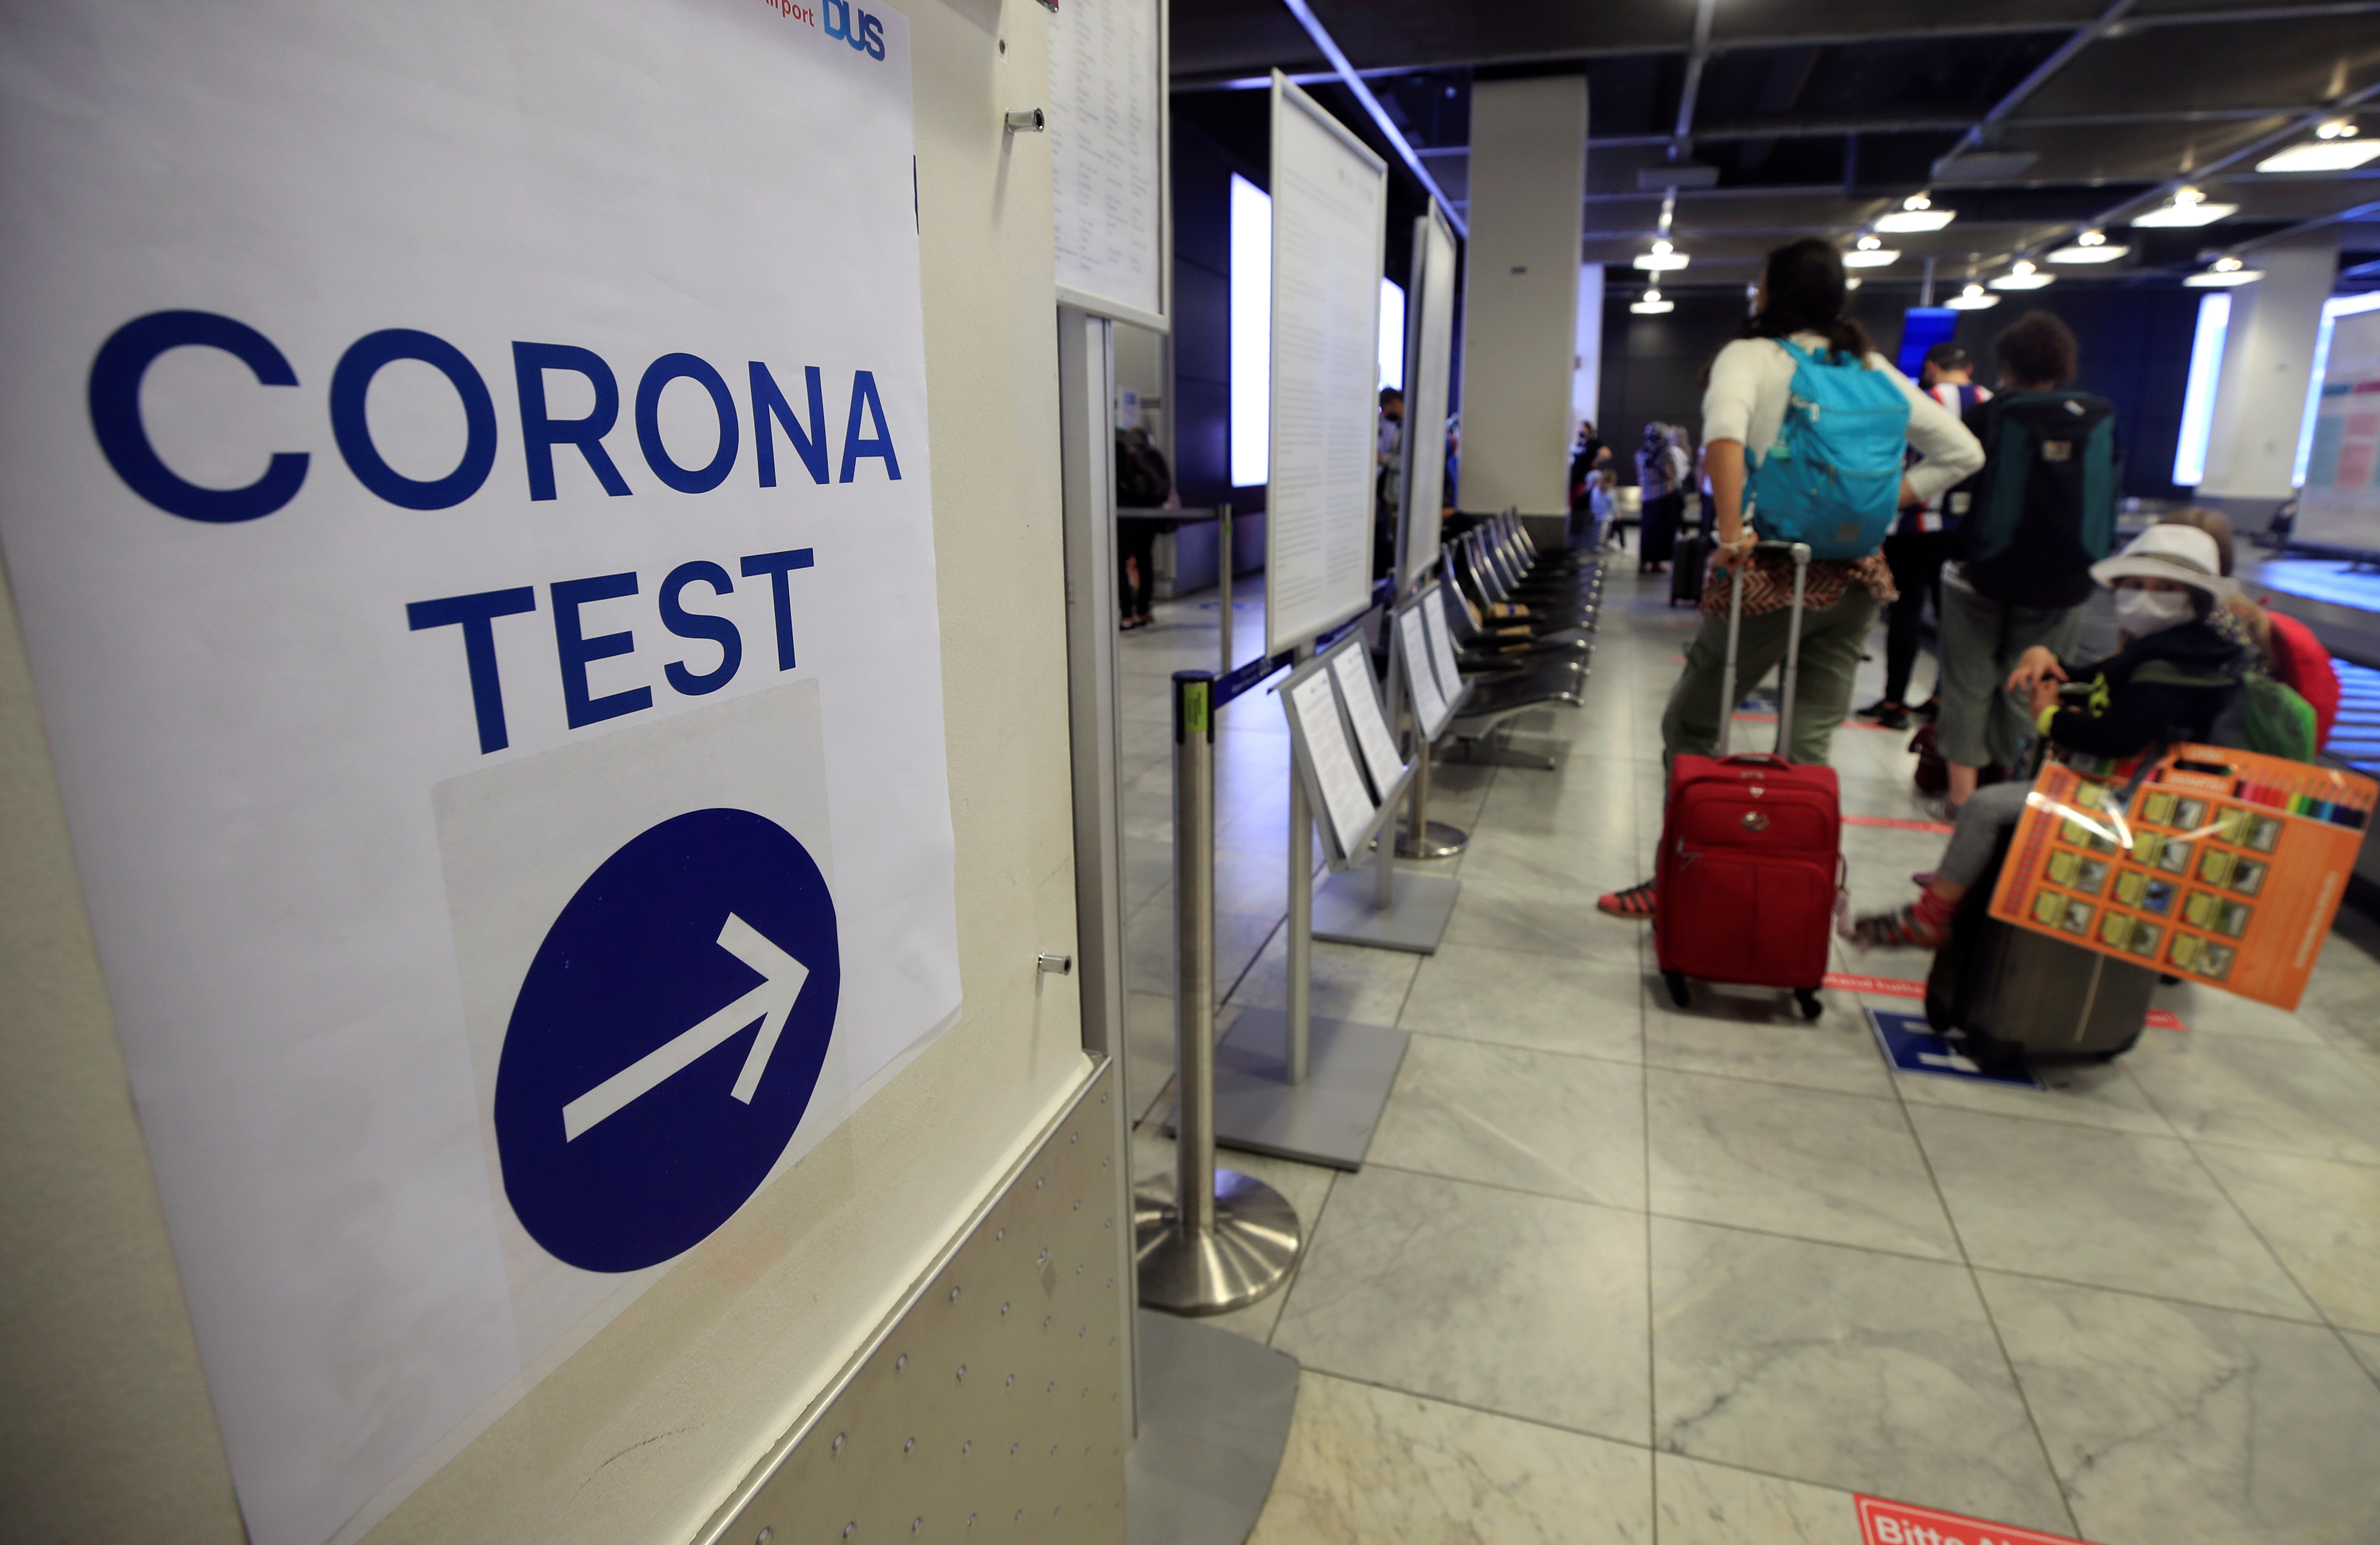 Travellers line up at the new Corona Test Centre at Duesseldorf Airport in Duesseldorf, Germany, July 27, 2020.  REUTERS/Wolfgang Rattay